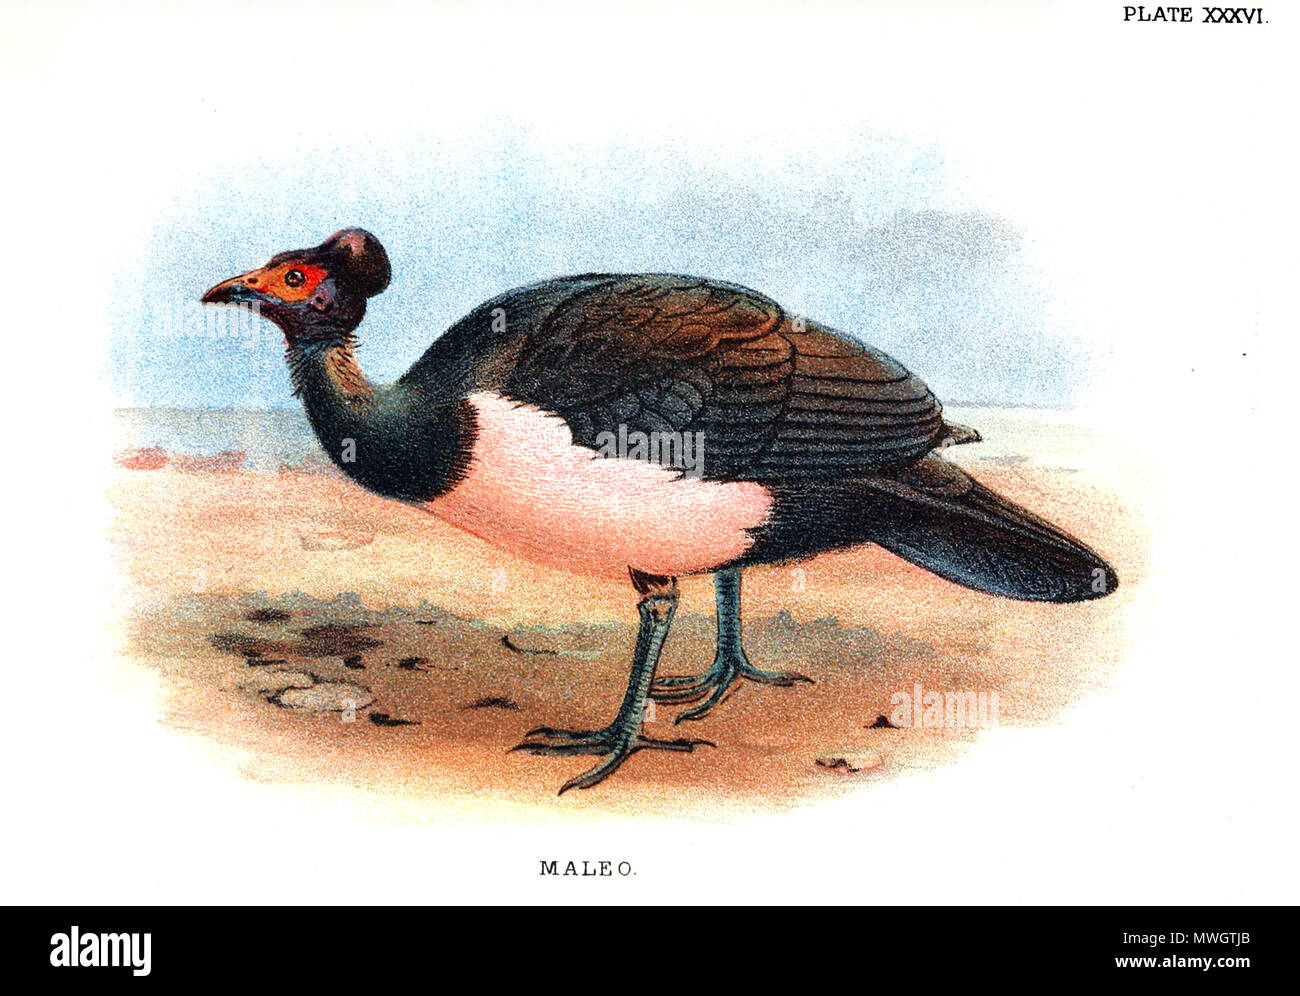 . antique lithograph Print of 'MALEO (Celebes, Sanghir Islands, Indonesia)' published in 1896 for 'Lloyd's Natural History of Game Birds' by W.R.Ogilvie-Grant. Real size of printed area is 5' x 7' (13x18cm). published in 1896. This file is lacking author information. 389 Maleo bird - Stock Image